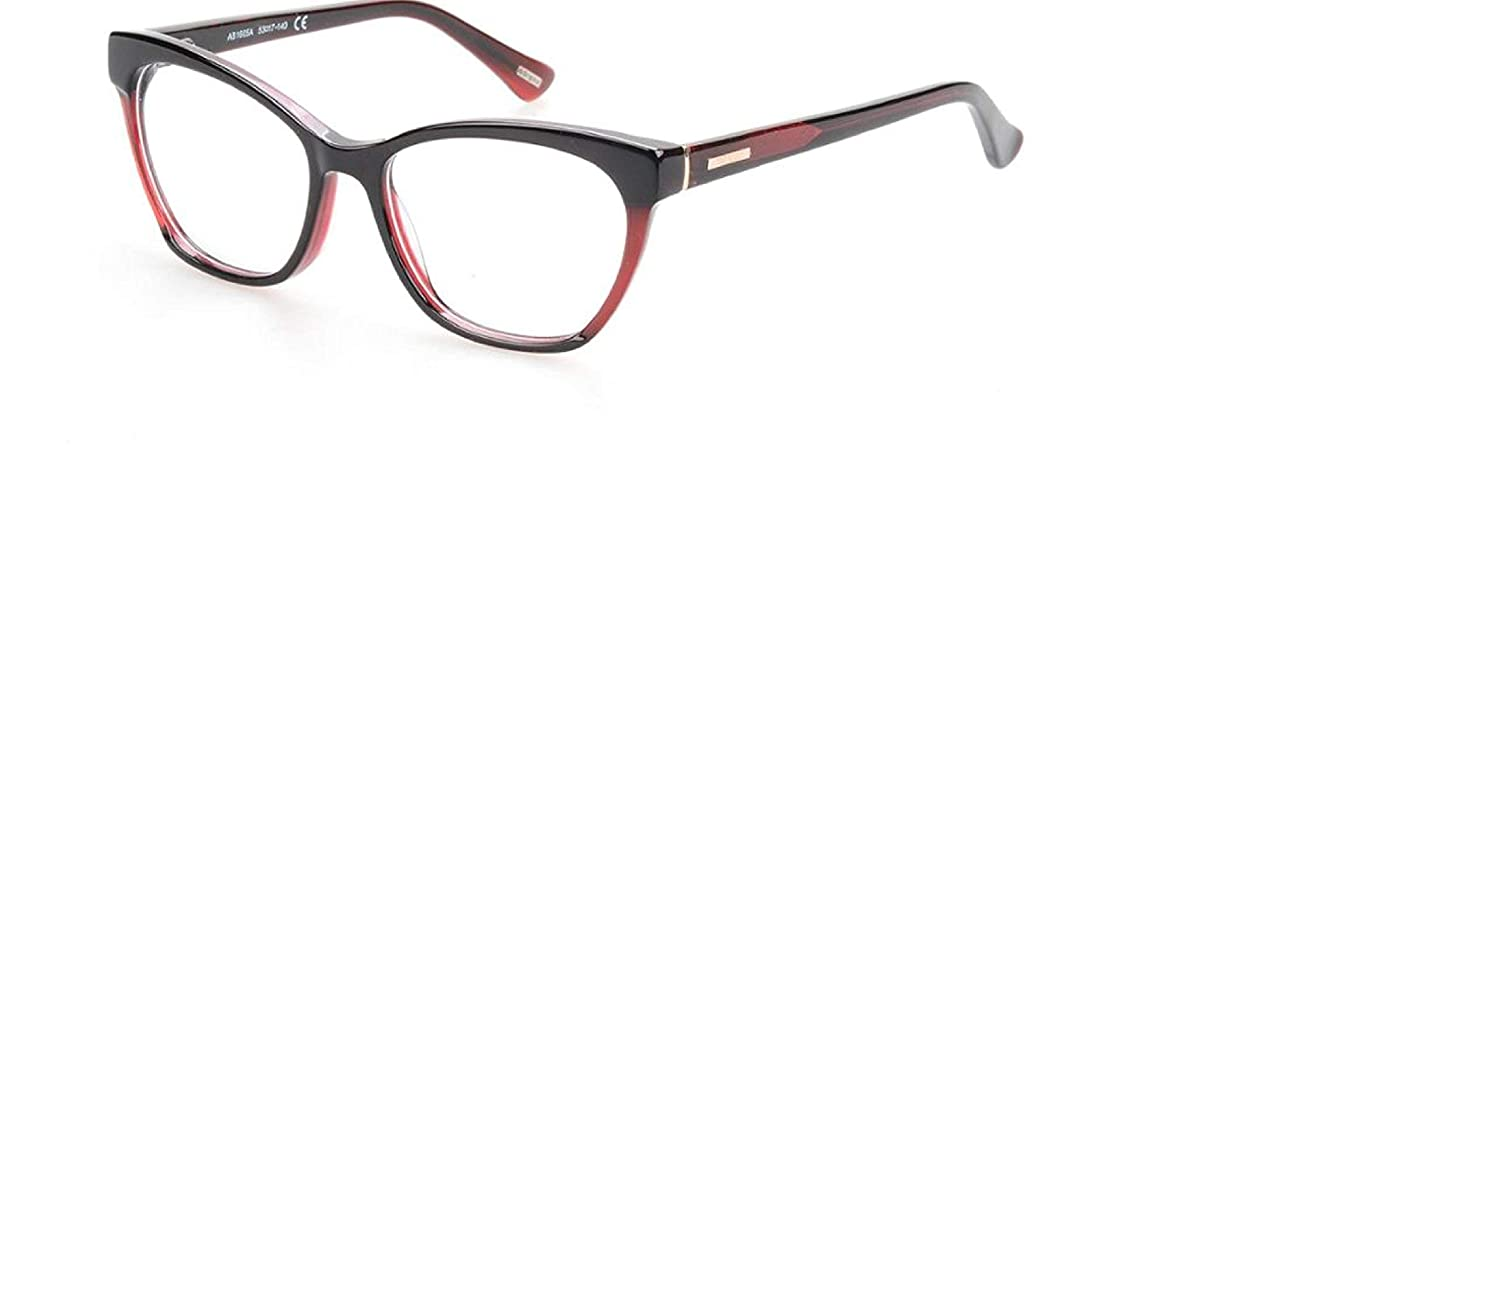 4722a2ba4e4 Amazon.com  Handcrafted Designer Eyeglasses- by GautierLondon - Original  Price  119(Clearance Sale- 75% Discounted) Now  29.99  Home   Kitchen